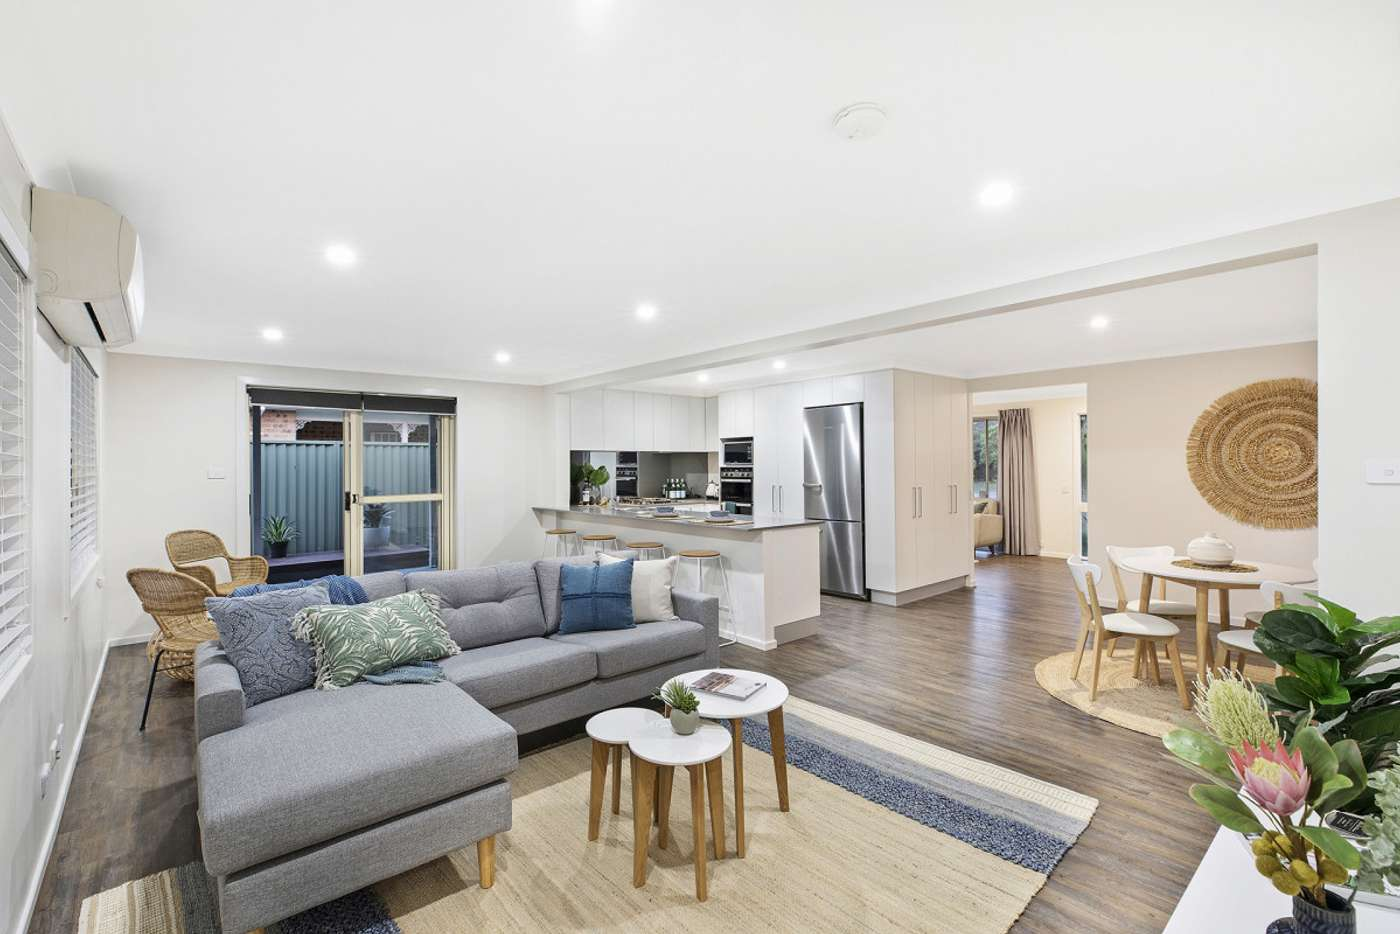 Main view of Homely house listing, 4 Lara Close, Ourimbah NSW 2258